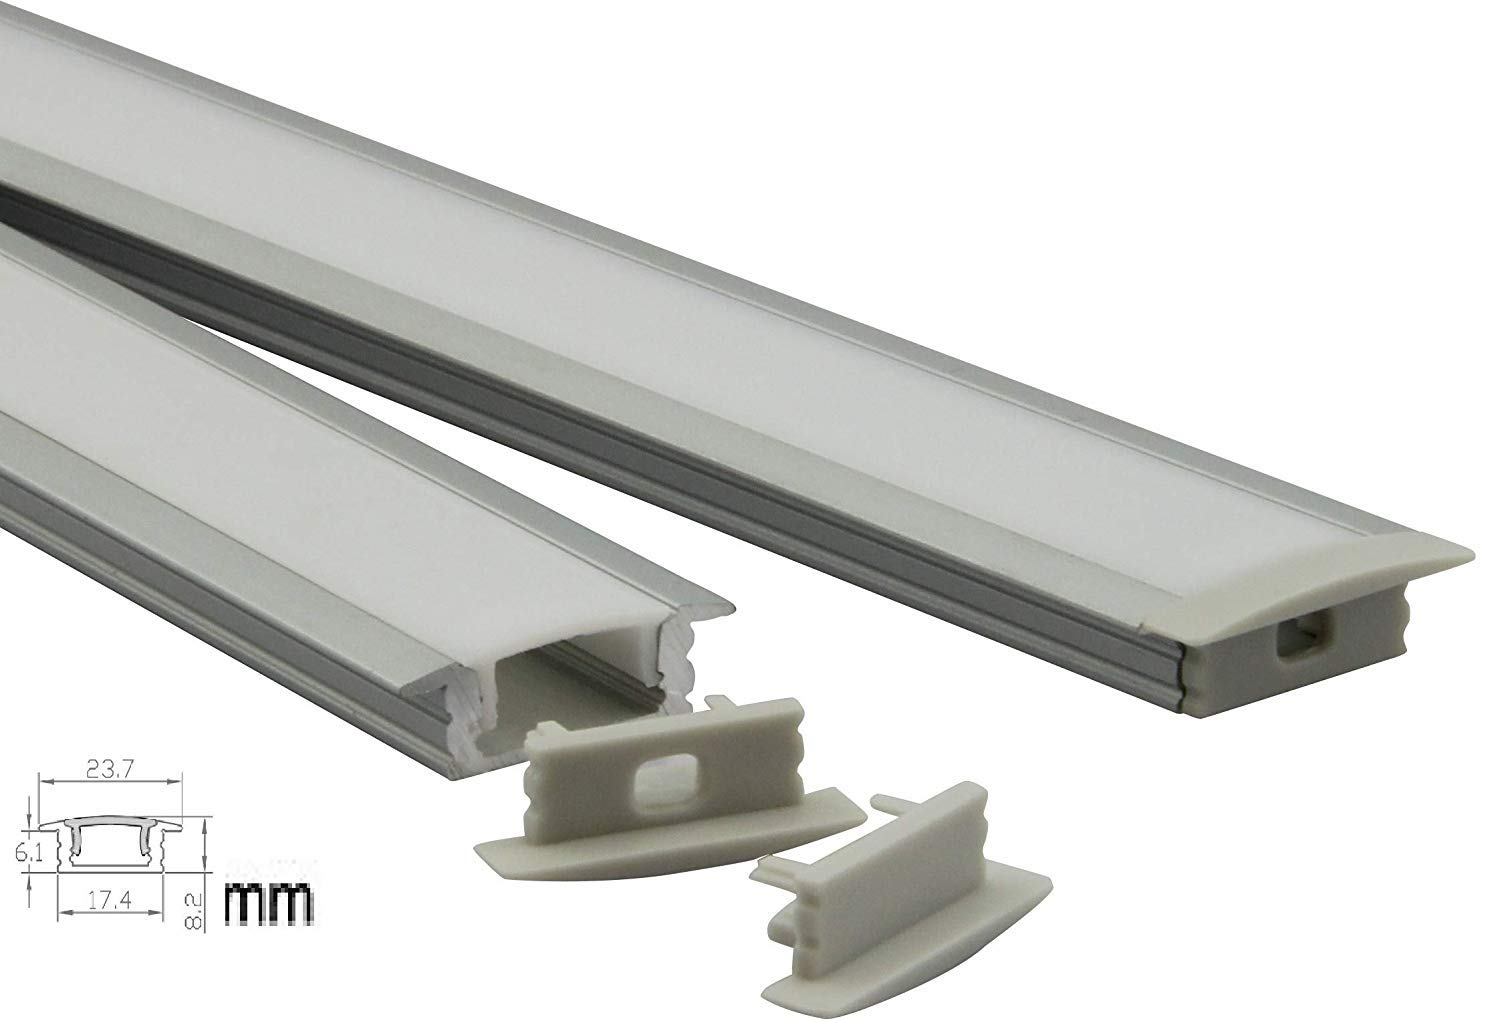 Culver Led U Shape LED Aluminum Channel System with Cover, End Caps and Mounting Clips Aluminum Profile for LED Strip Light Installations, Led Lights Diffuser Segments 2507 6.6ft-2mt-10pack)